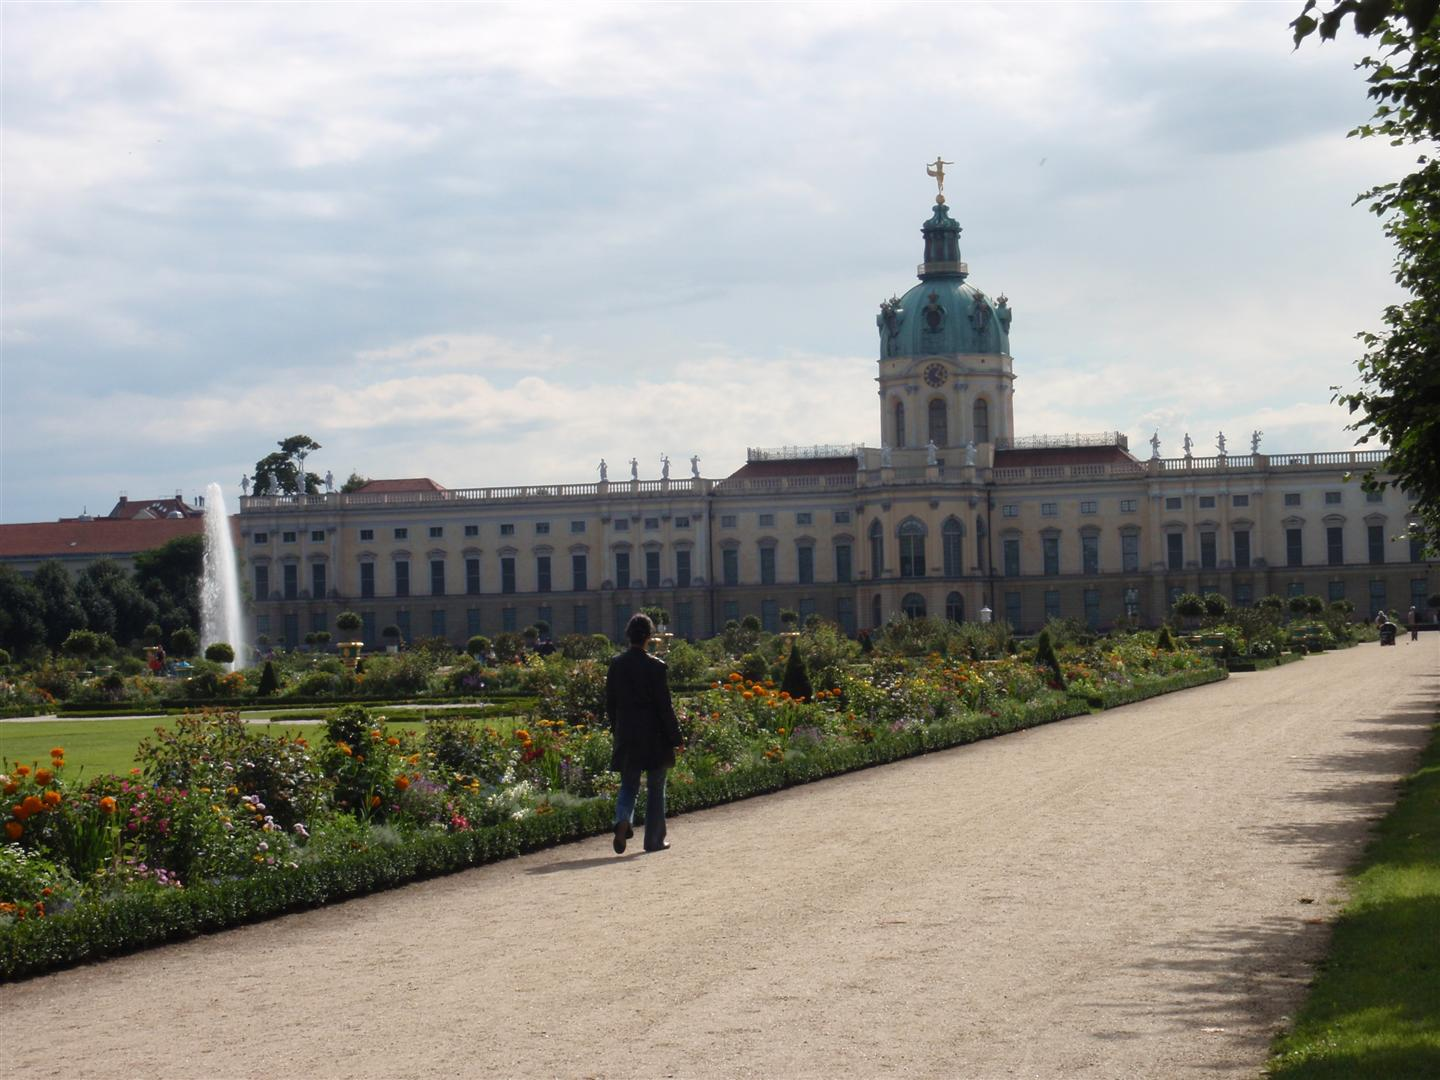 The formal gardens at Charlottenburg Palace